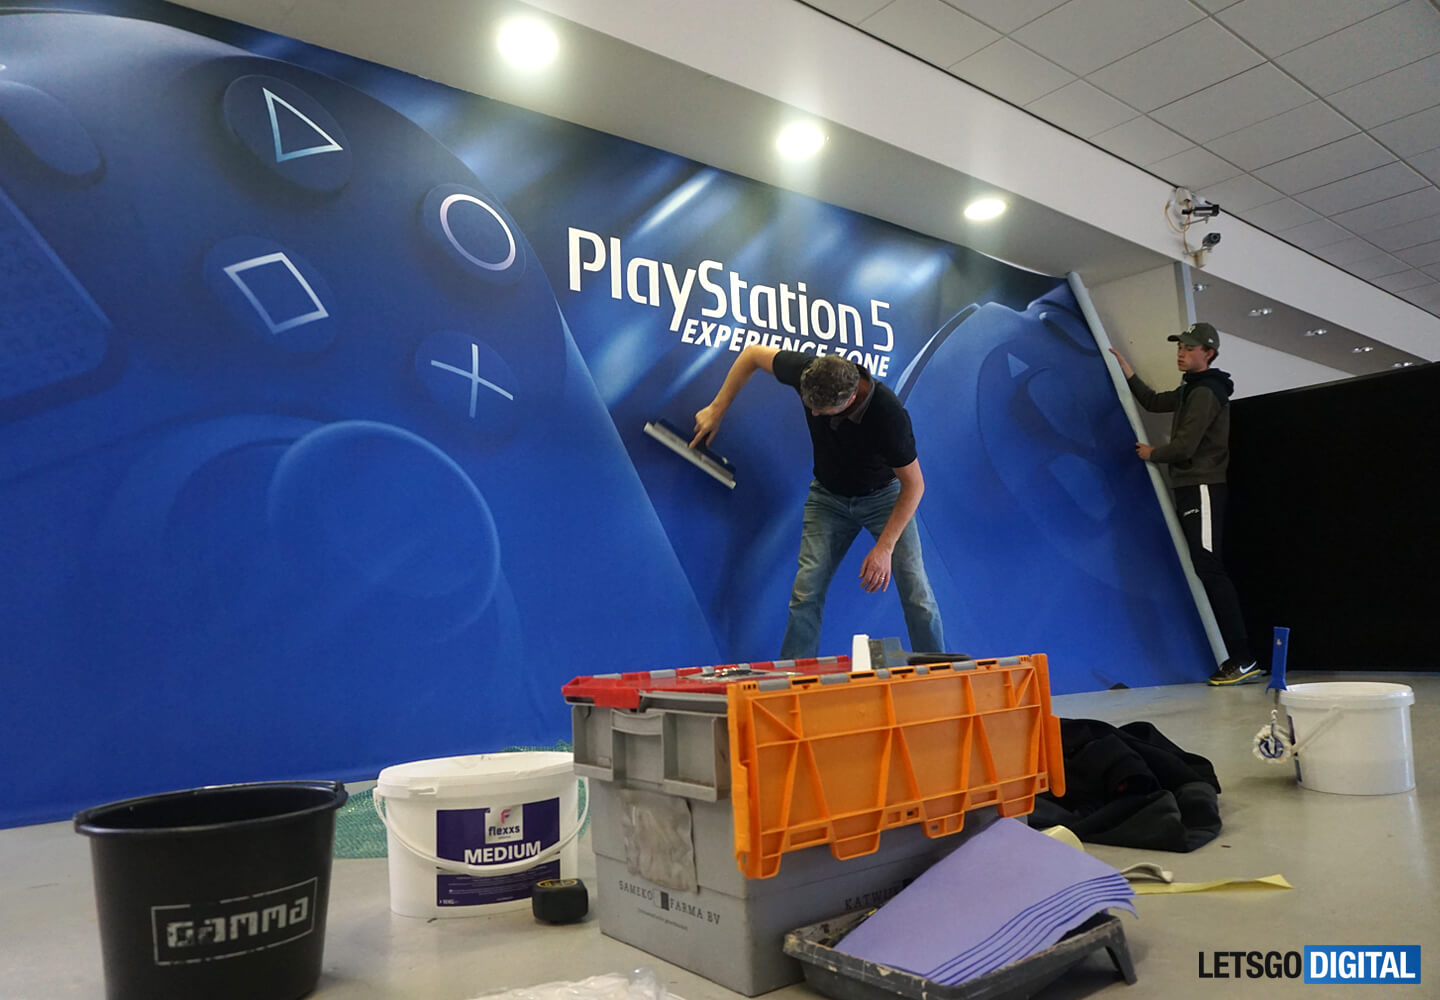 Playstation 5 game experience